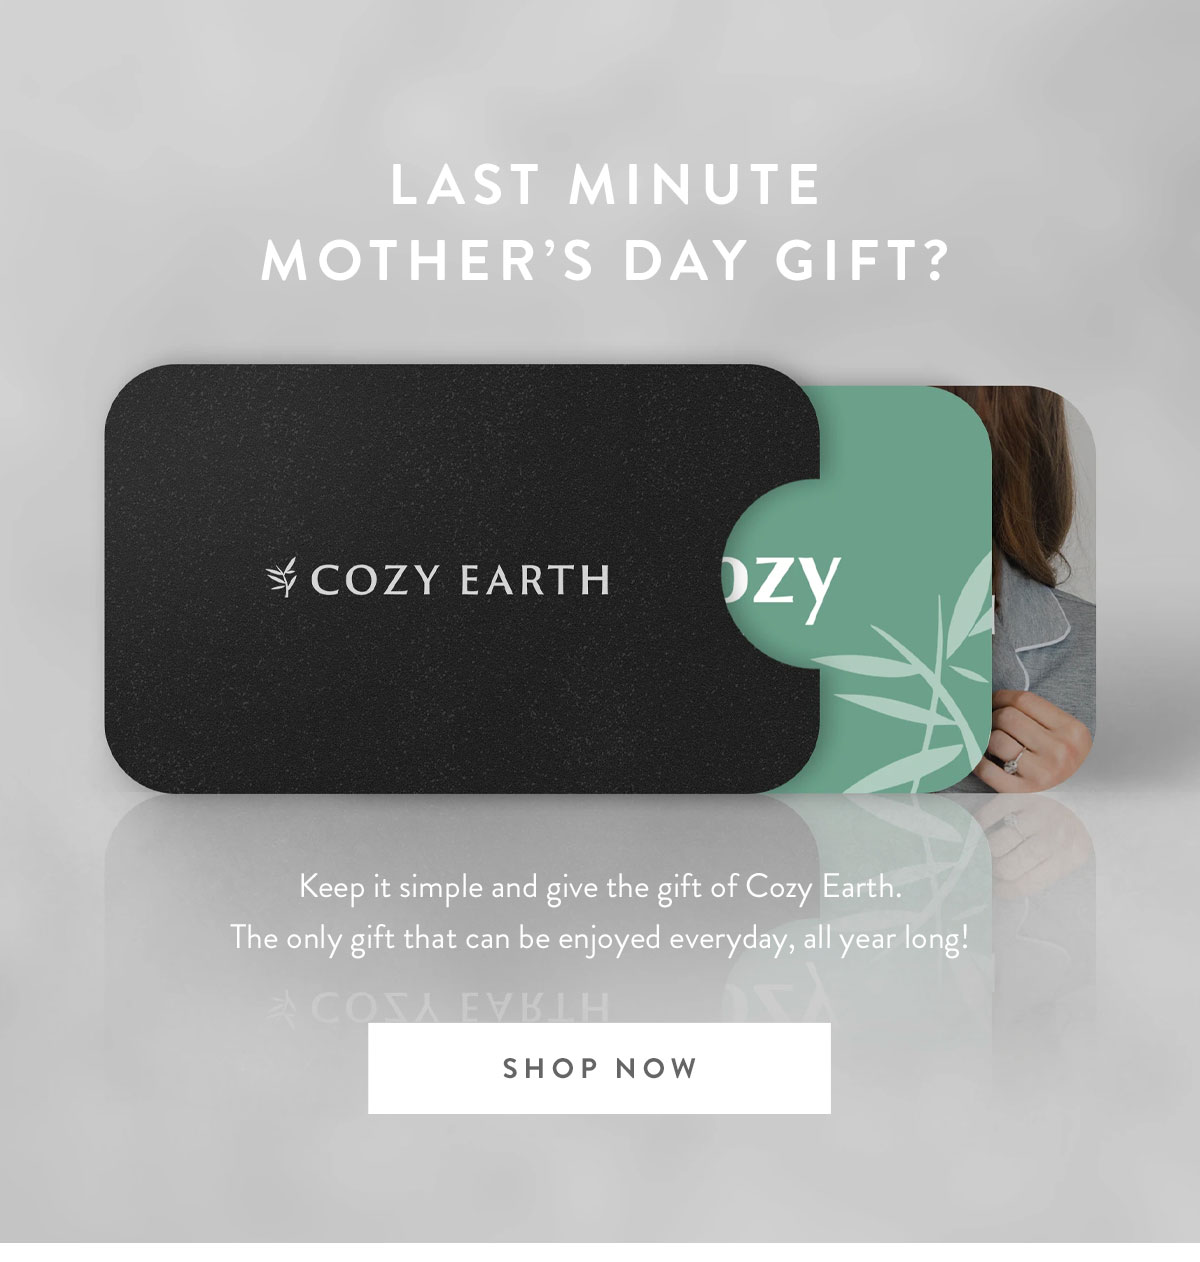 LAST MINUTE MOTHER'S DAY GIFT? Keep it simple and give the gift of Cozy Earth. The only gift that can be enjoyed everyday, all year long! | SHOP NOW